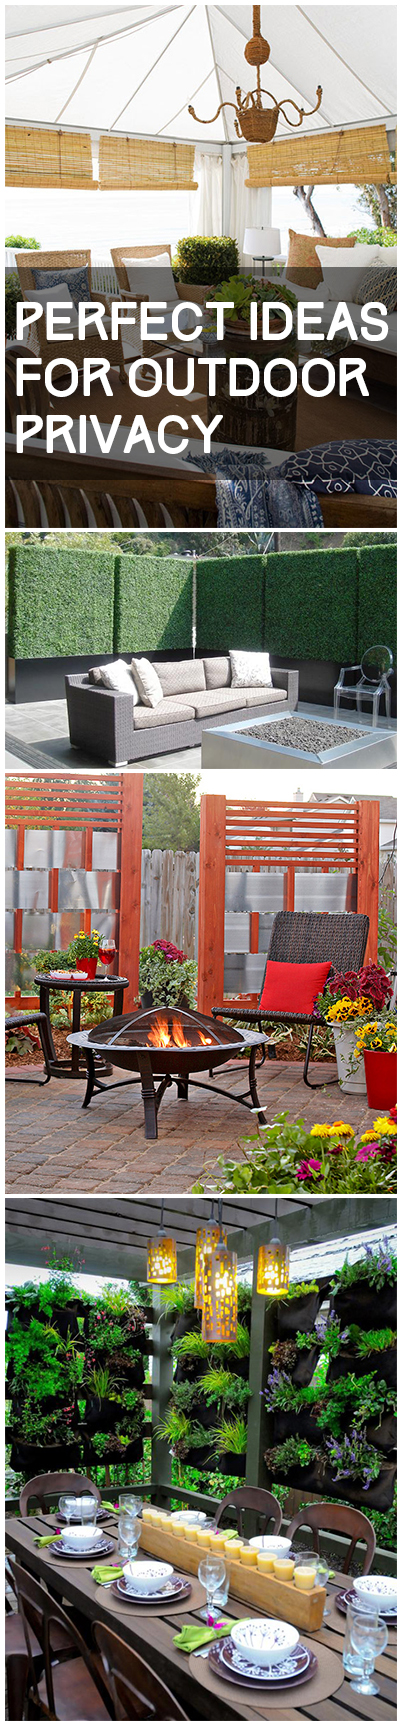 Outdoor privacy ideas, living fence, garden fence DIYs, popular pin, outdoor privacy hacks, yard updates, easy home upgrades.